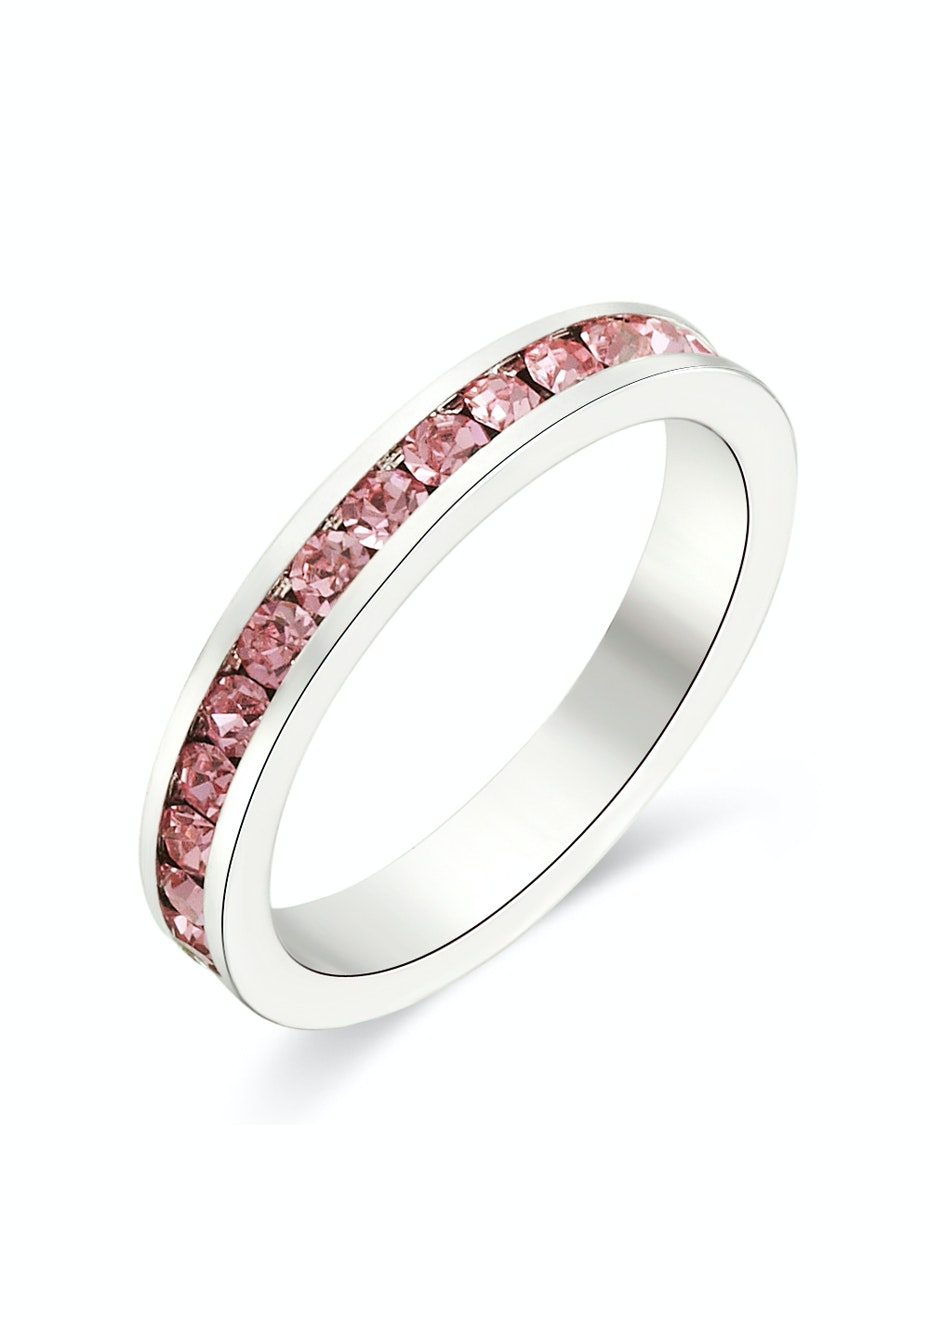 Stackable Ring - White Gold w Pink Embellished with Crystals from Swarovski